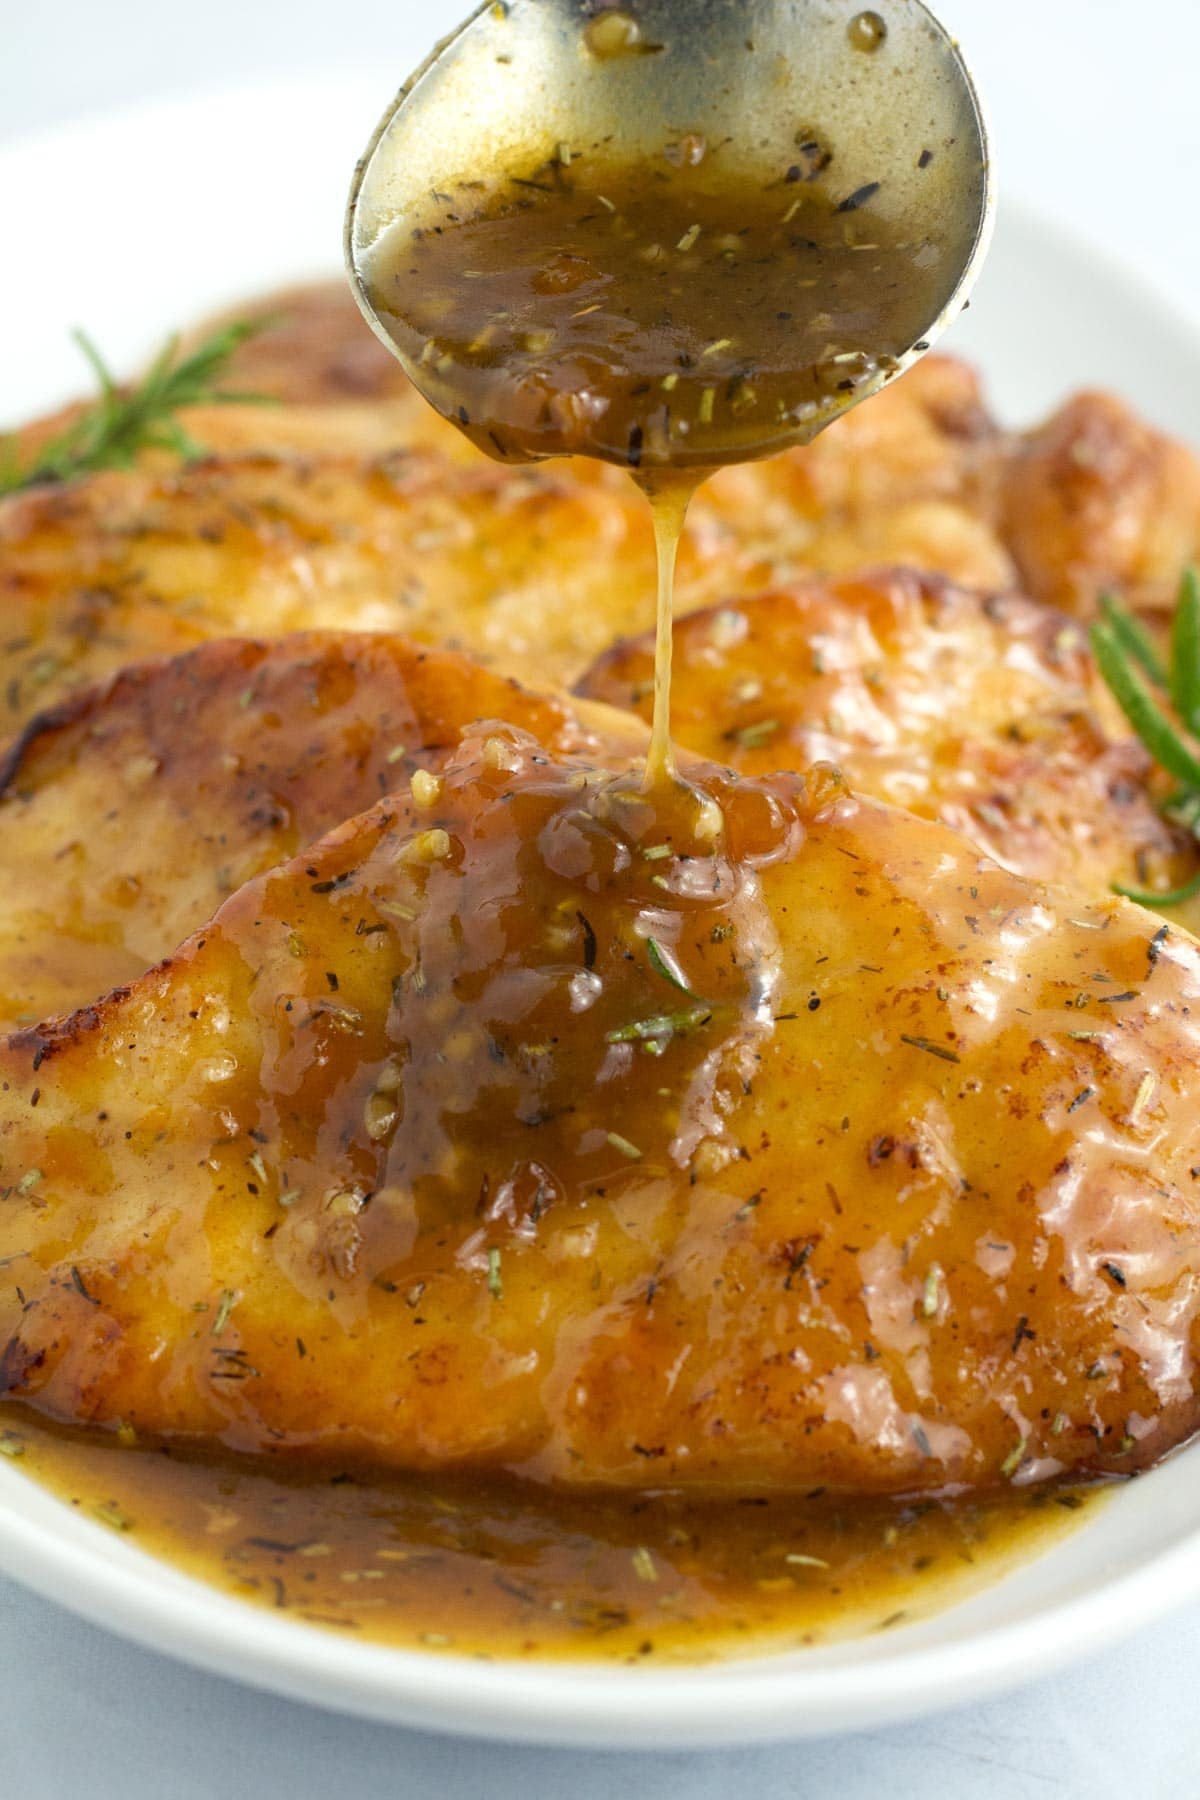 Spoon pouring apricot glaze on platter of chicken breasts.